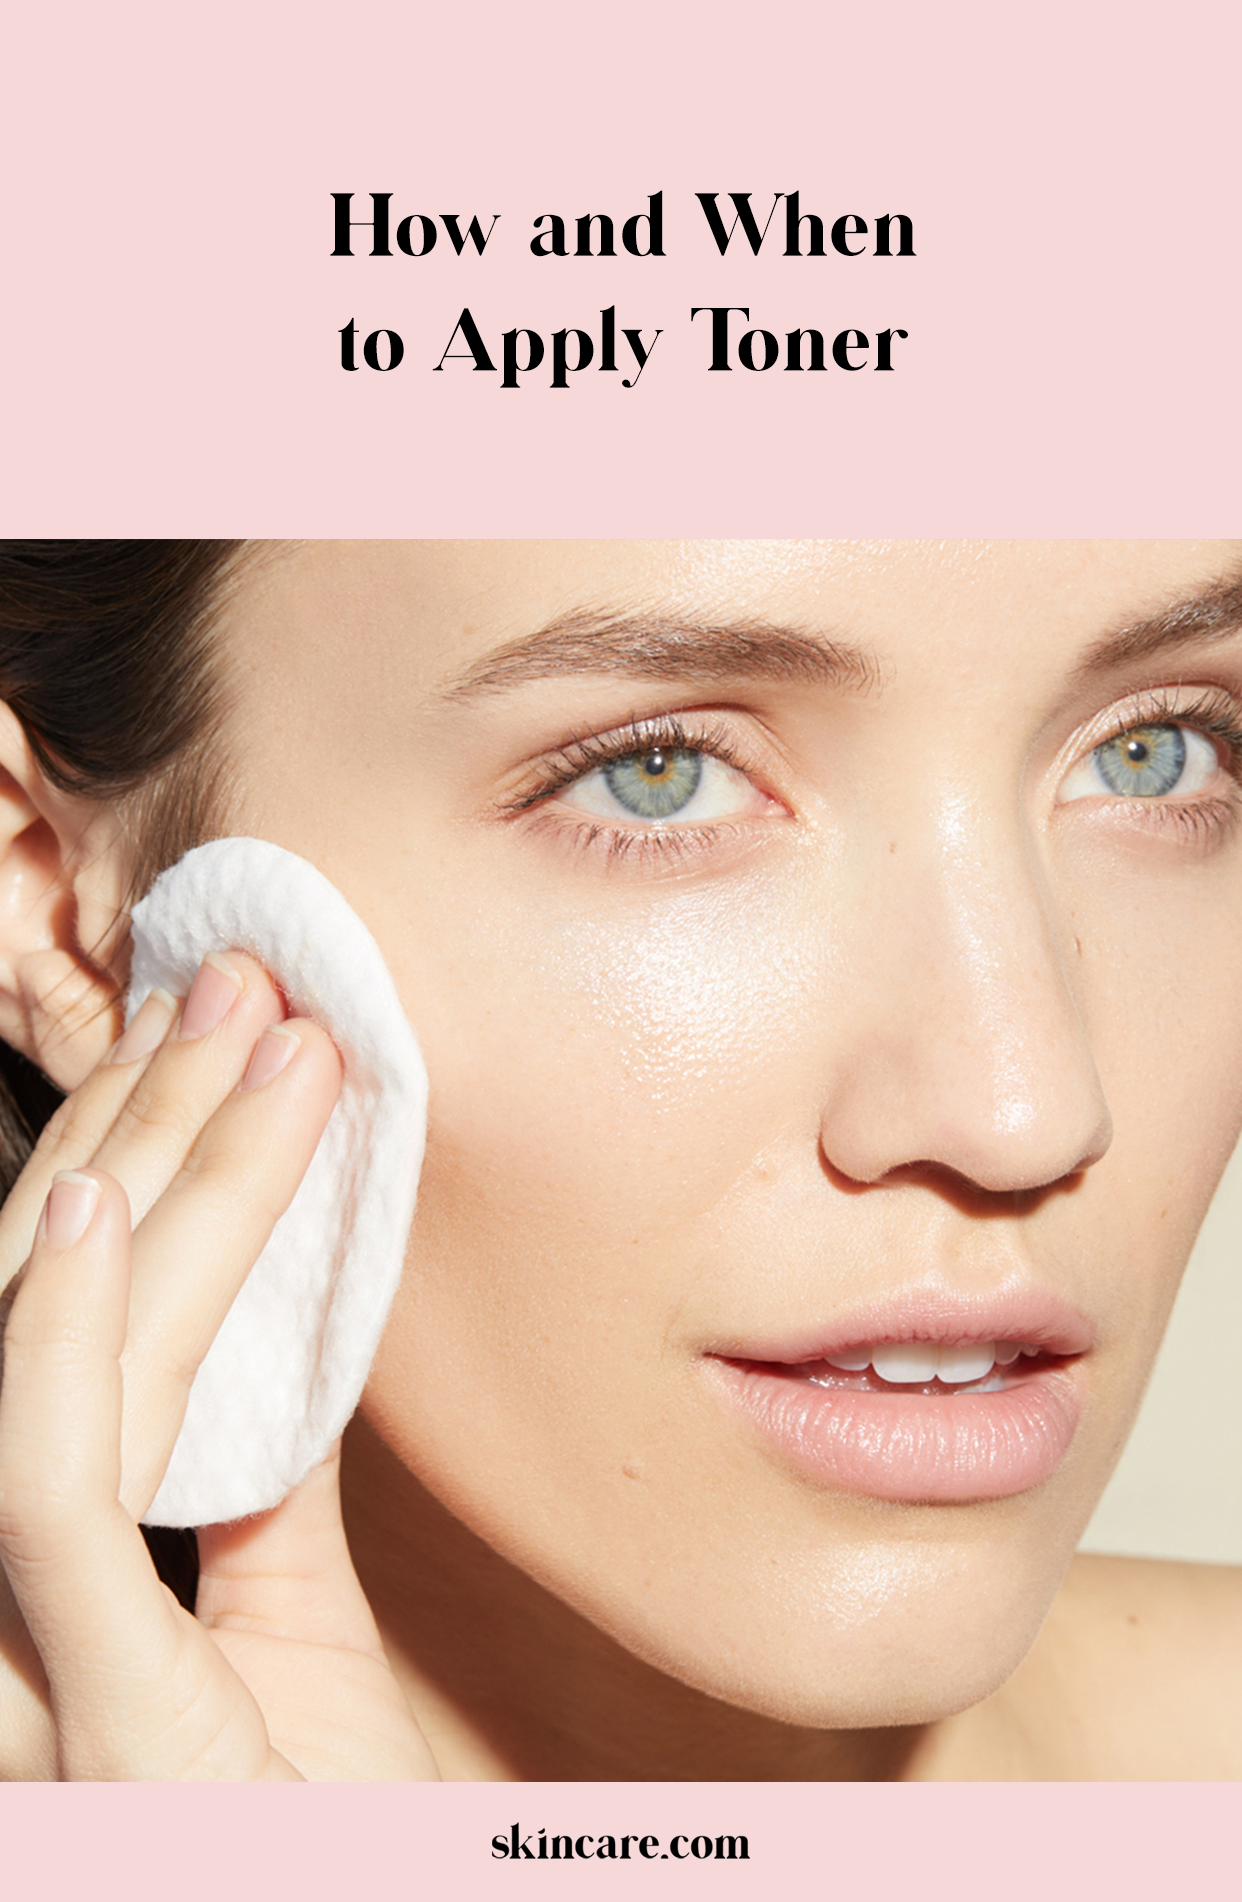 How And When To Apply Toner Skincare Com By L Oreal Toner For Face How To Apply Toner Skin Care Toner Products